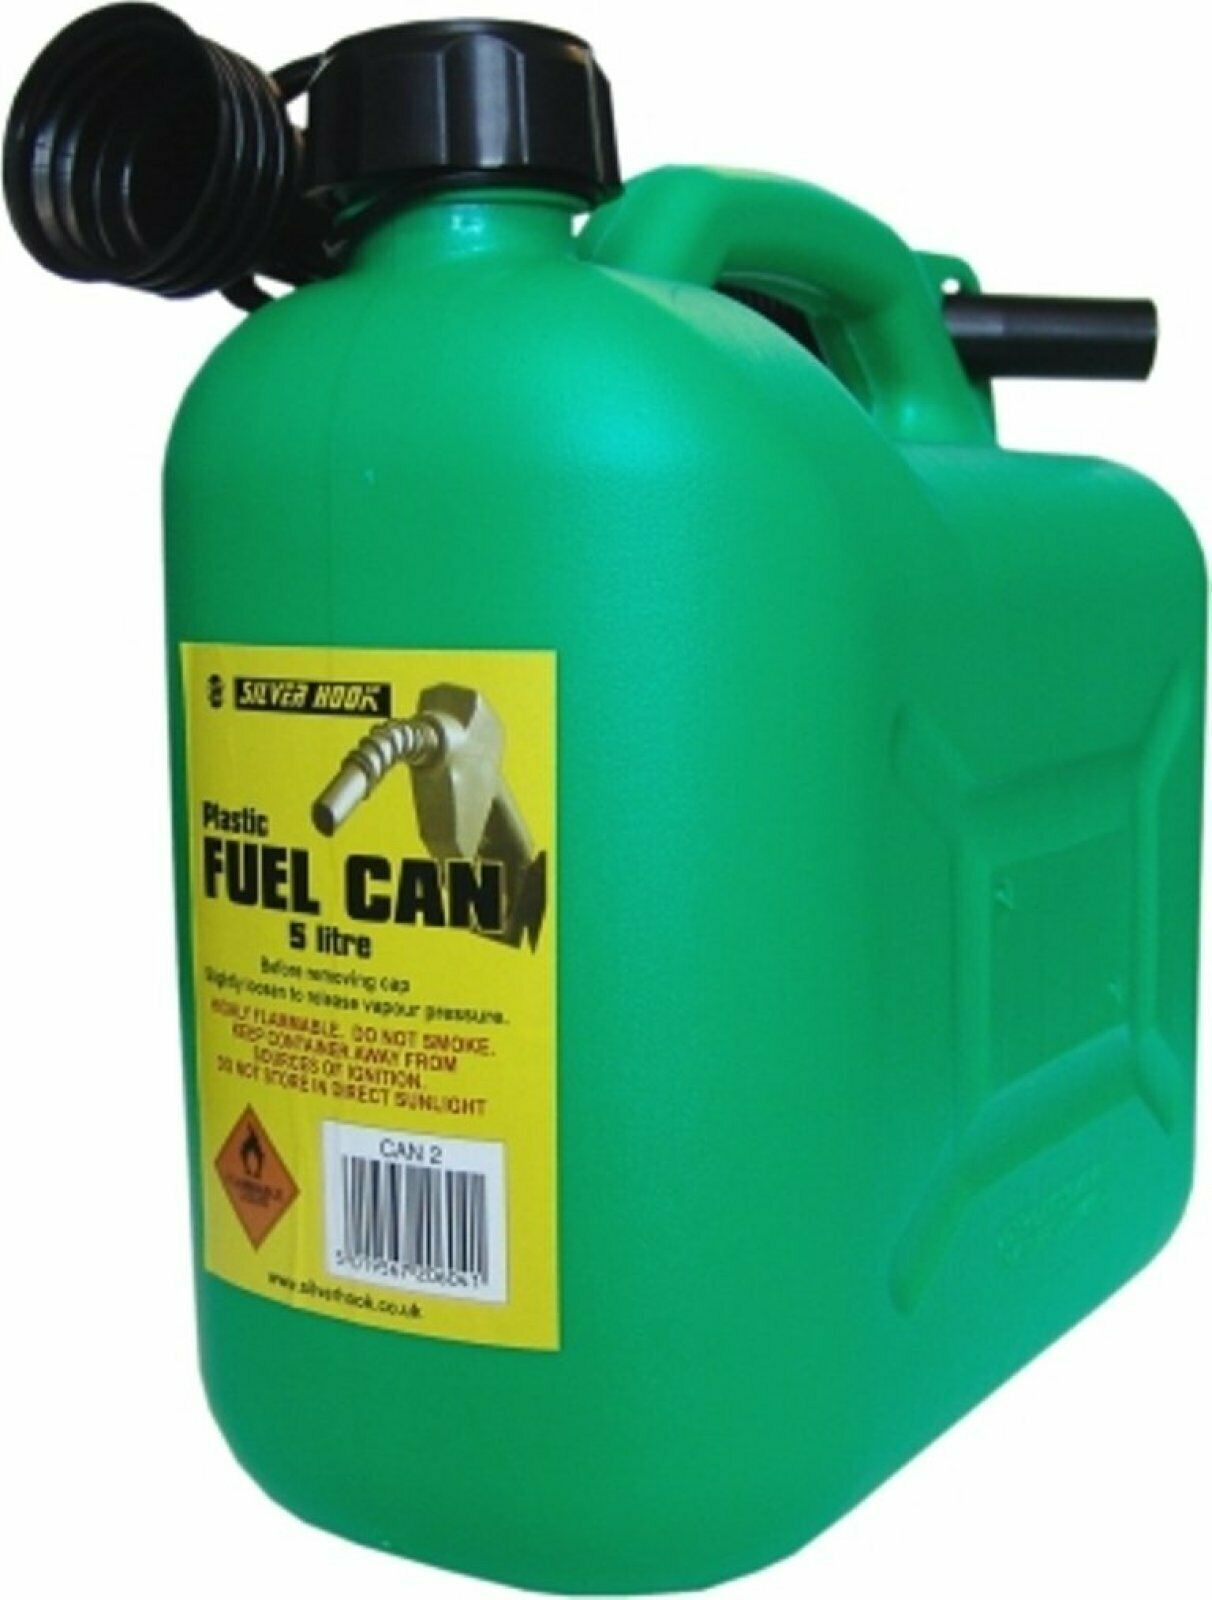 S Style Unleaded Petrol Can and Spout Green Carfuel Can 5